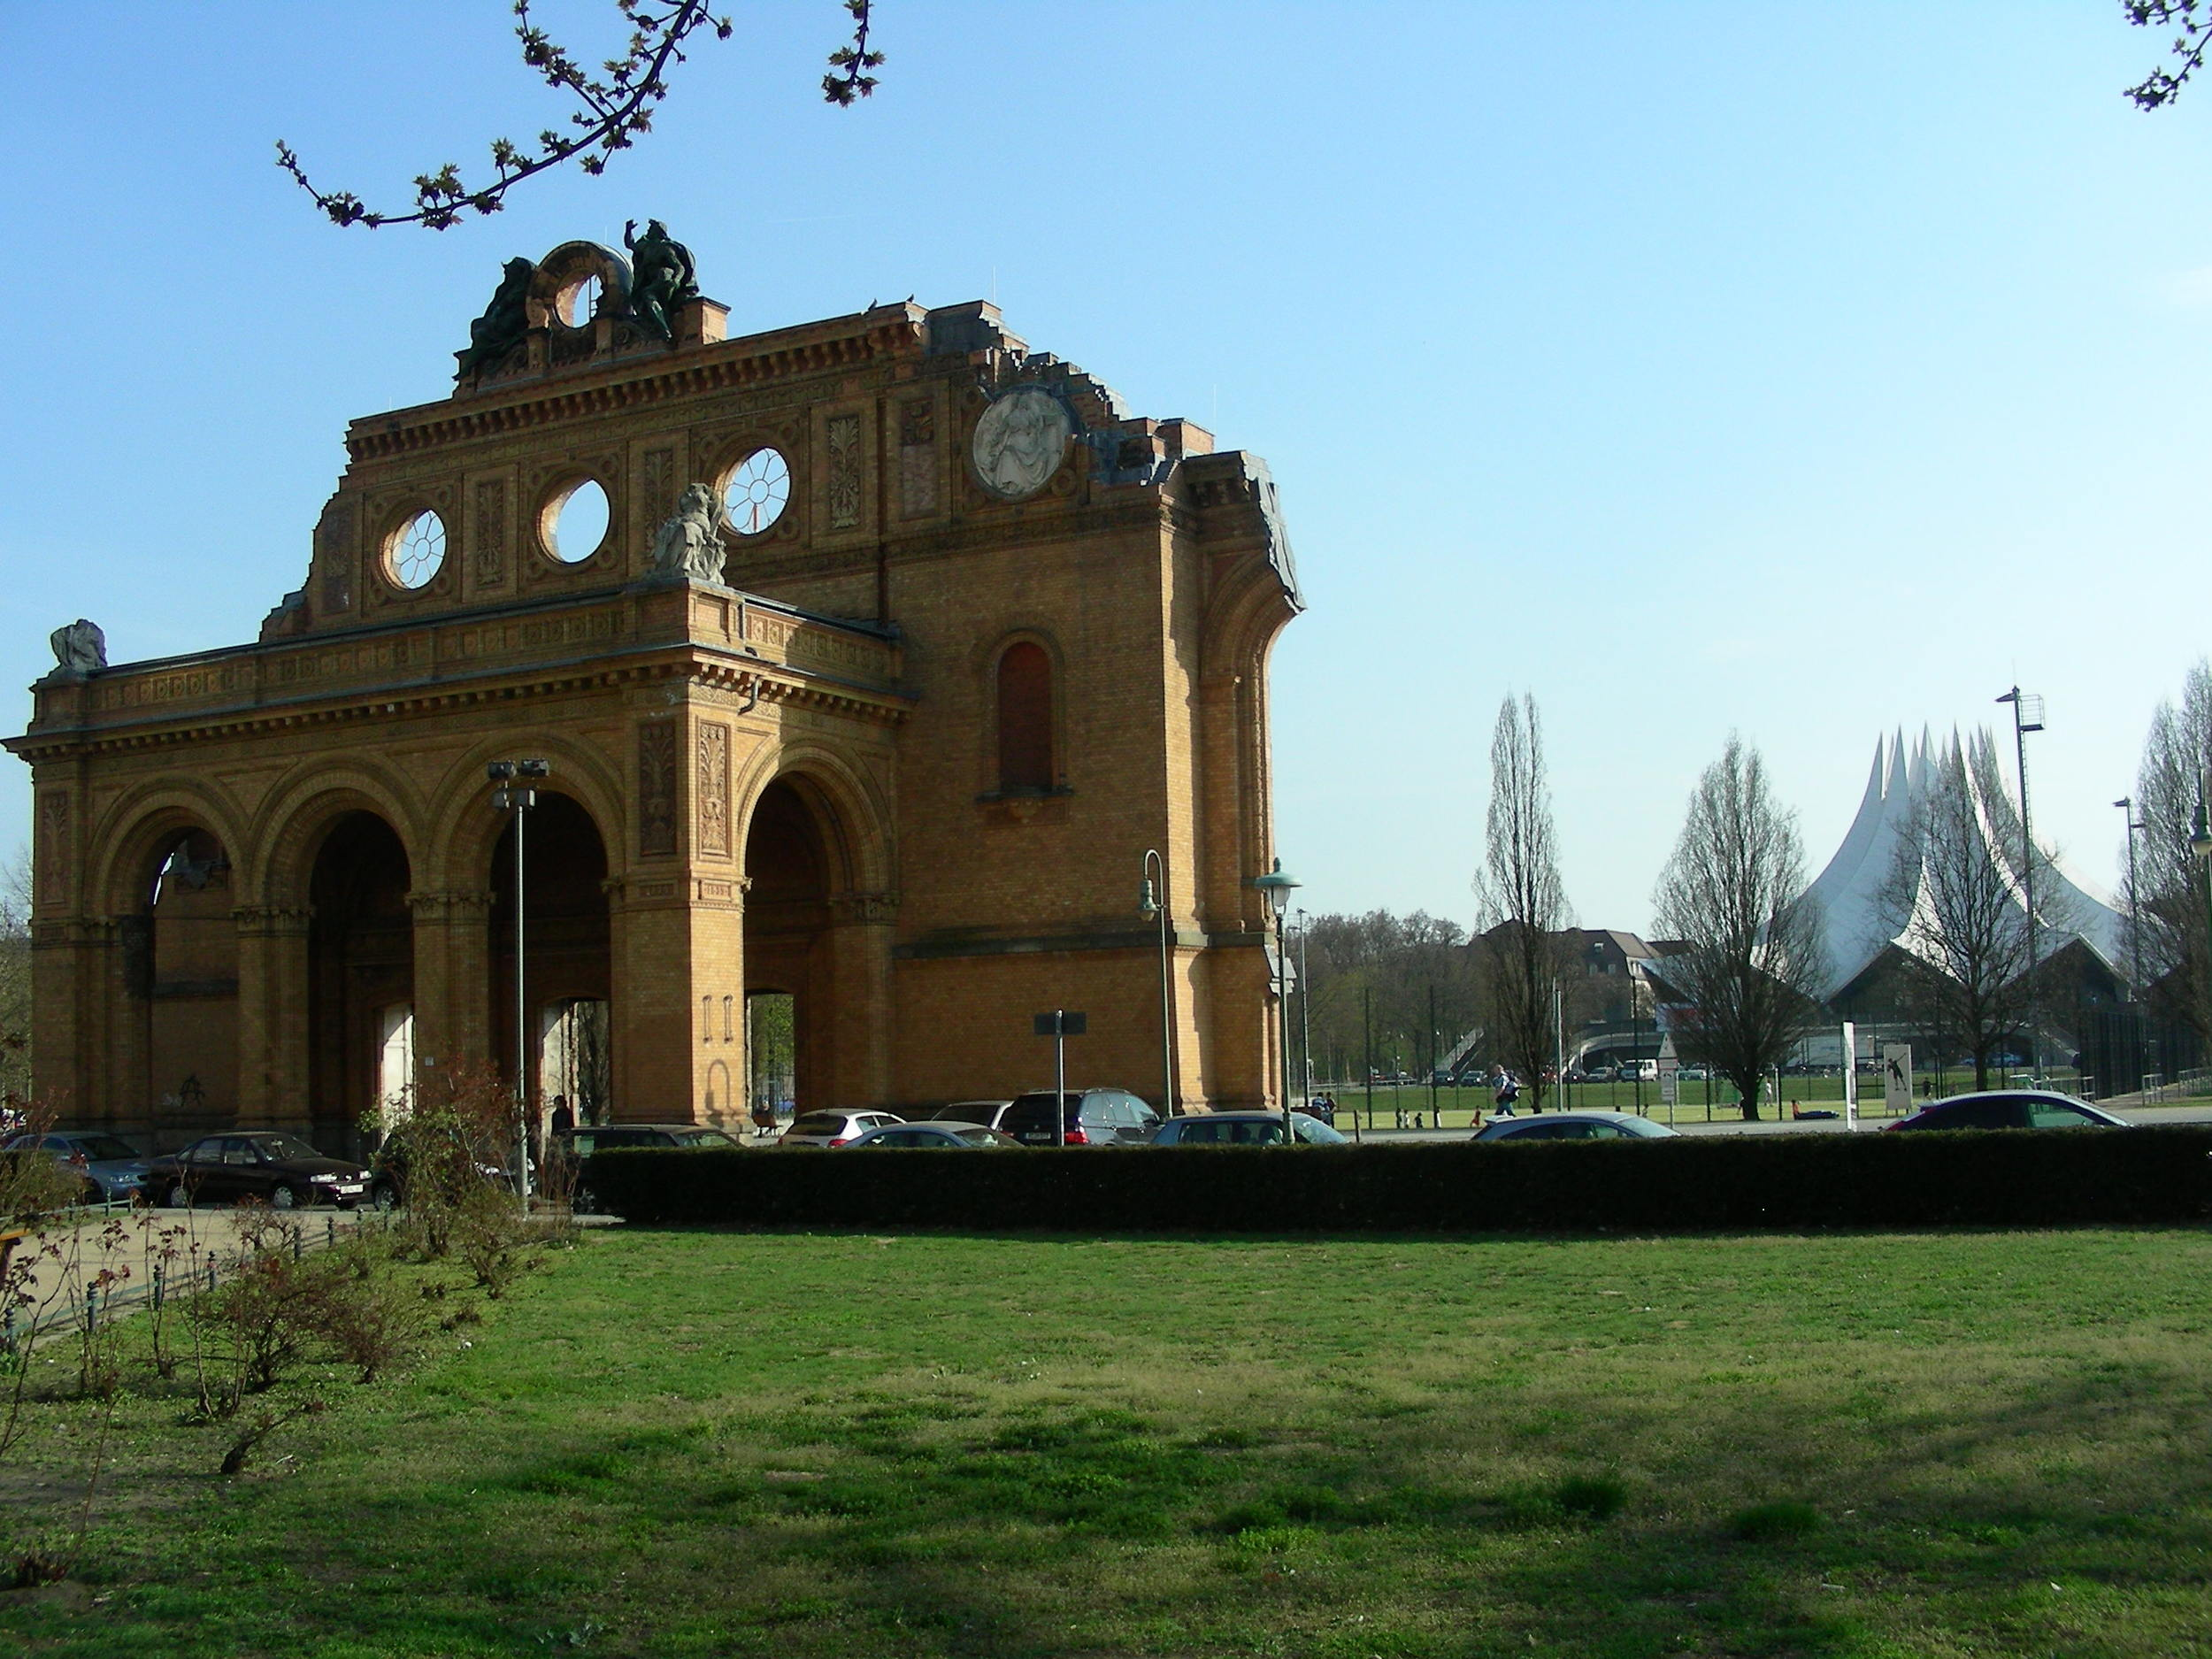 The remaining facade of the Anhalter Bahnhof. In the background you can see a sports field and the Berlin Tempodrom.